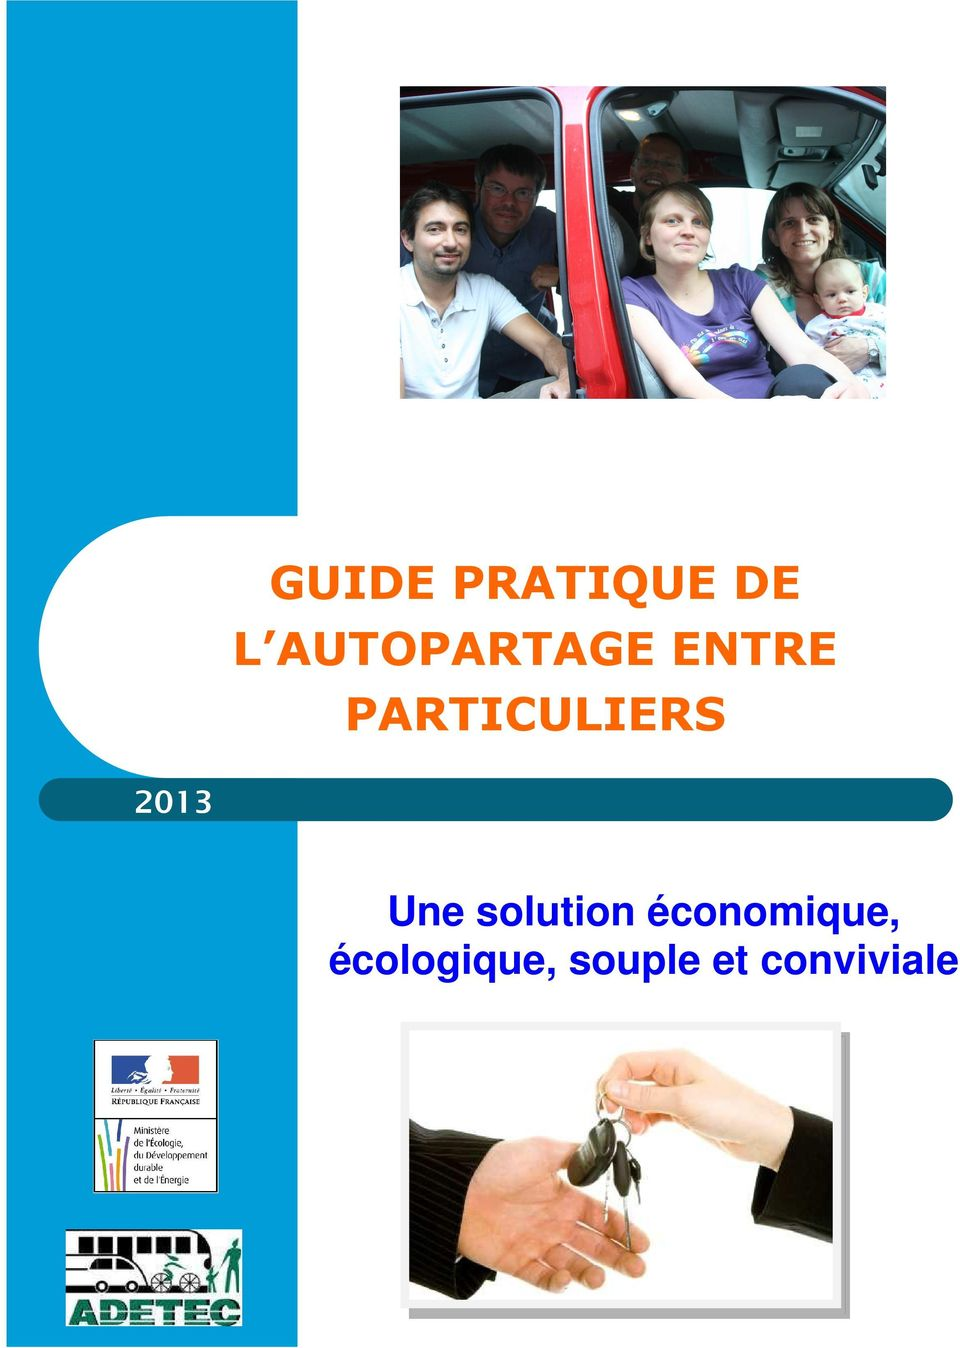 PARTICULIERS 2013 Une